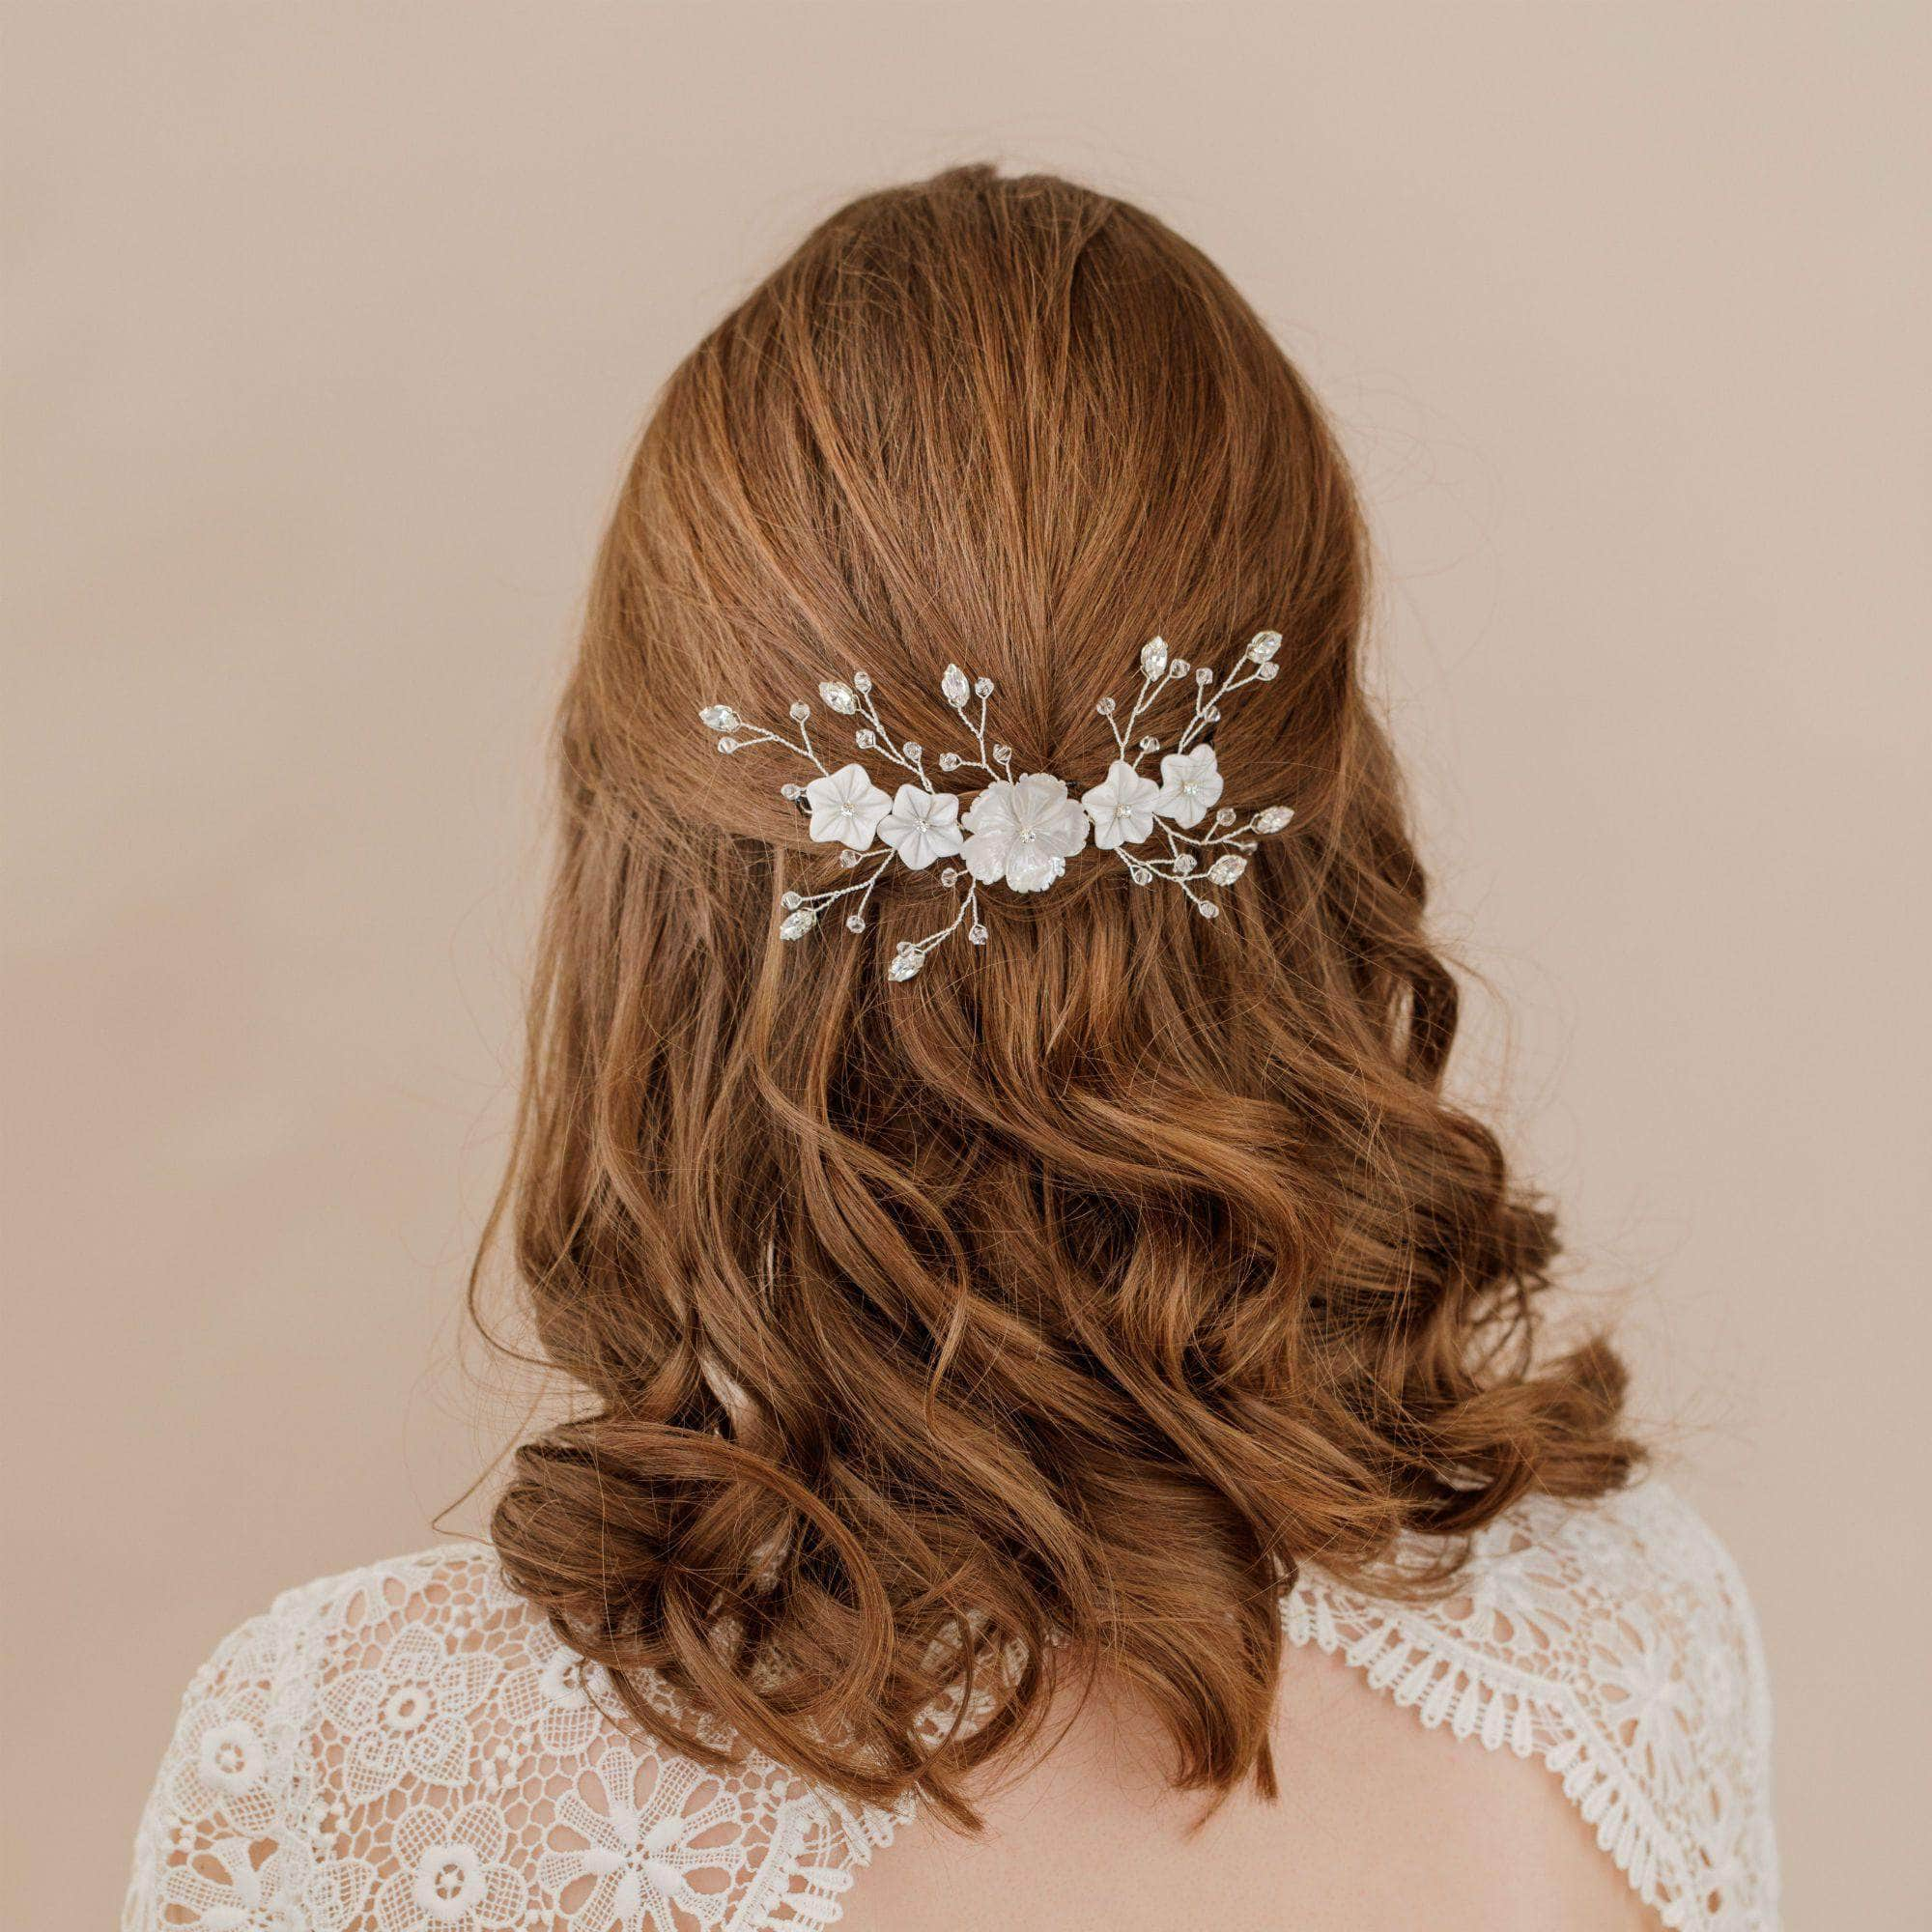 Silver floral hair centrepiece - 'Jaime' | Britten Weddings